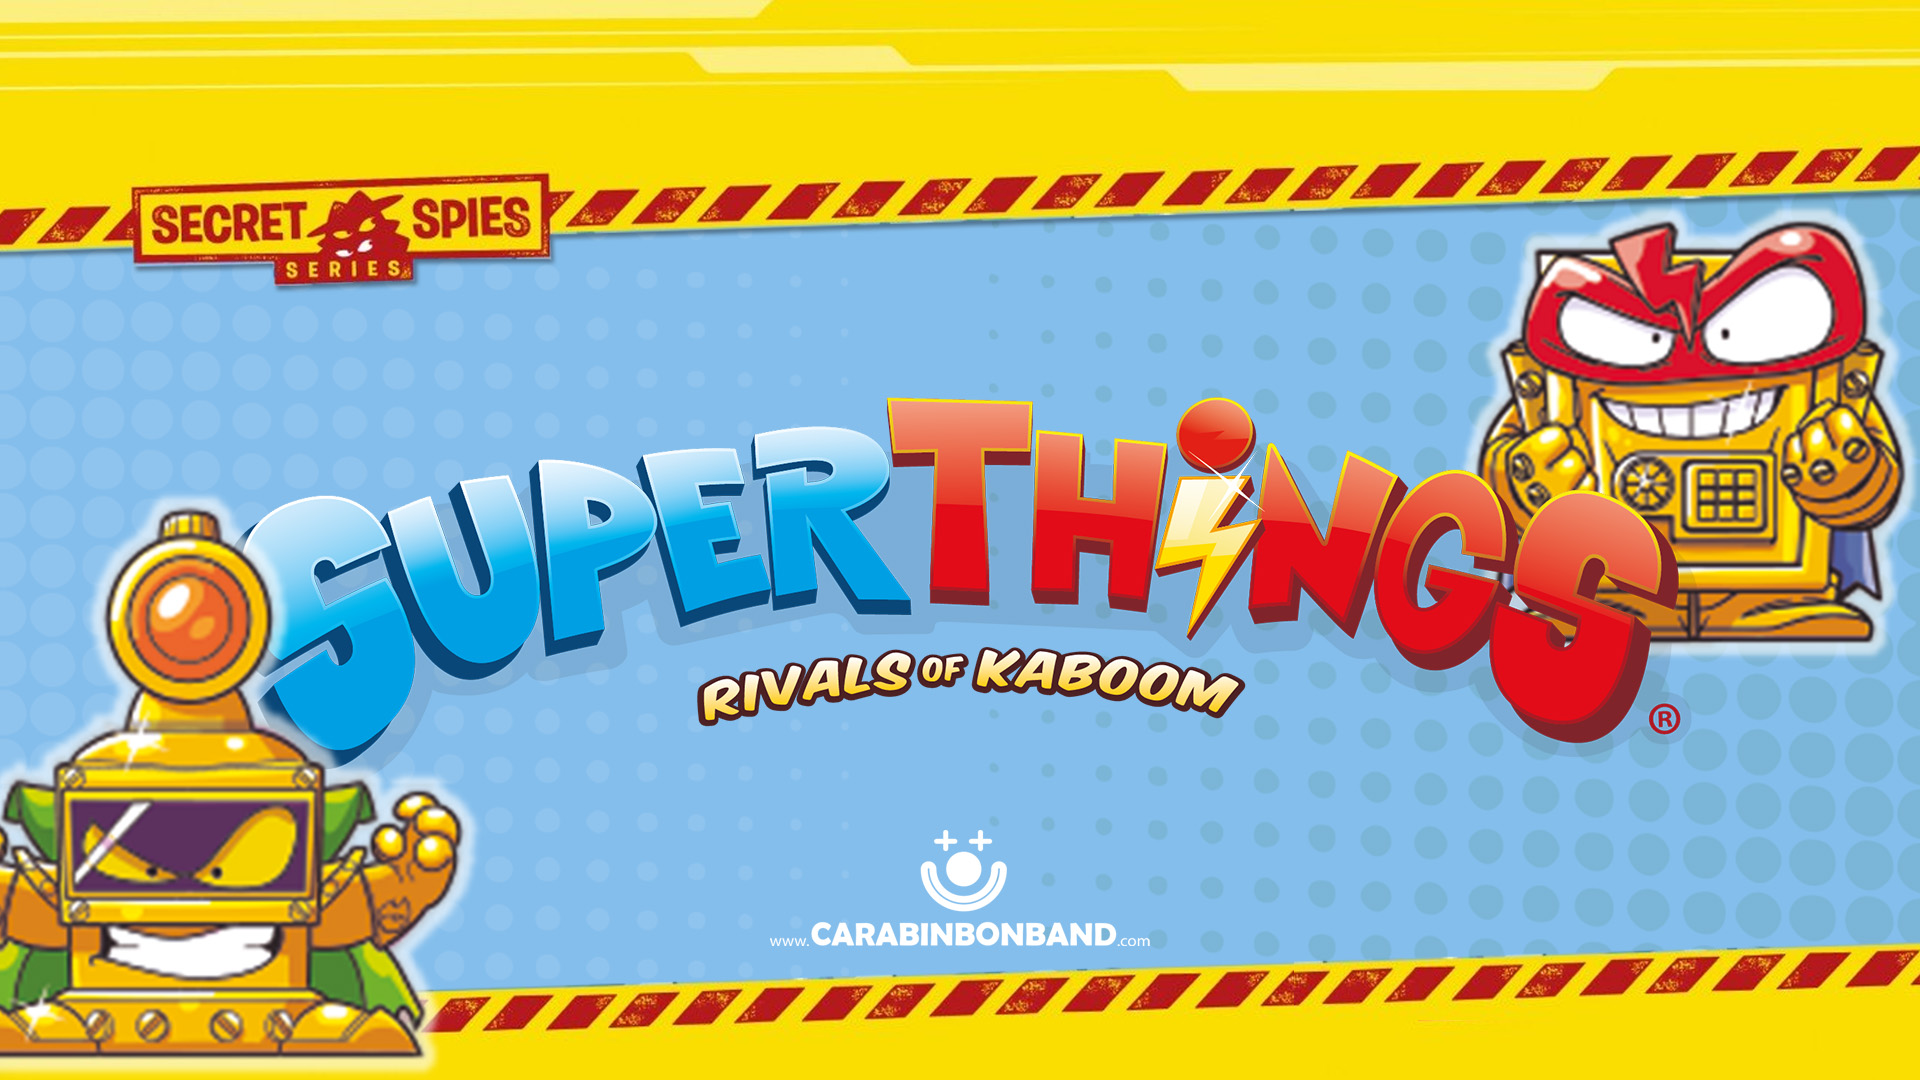 SUPERTHINGS SECRET SPIES - Couples of RIVALS